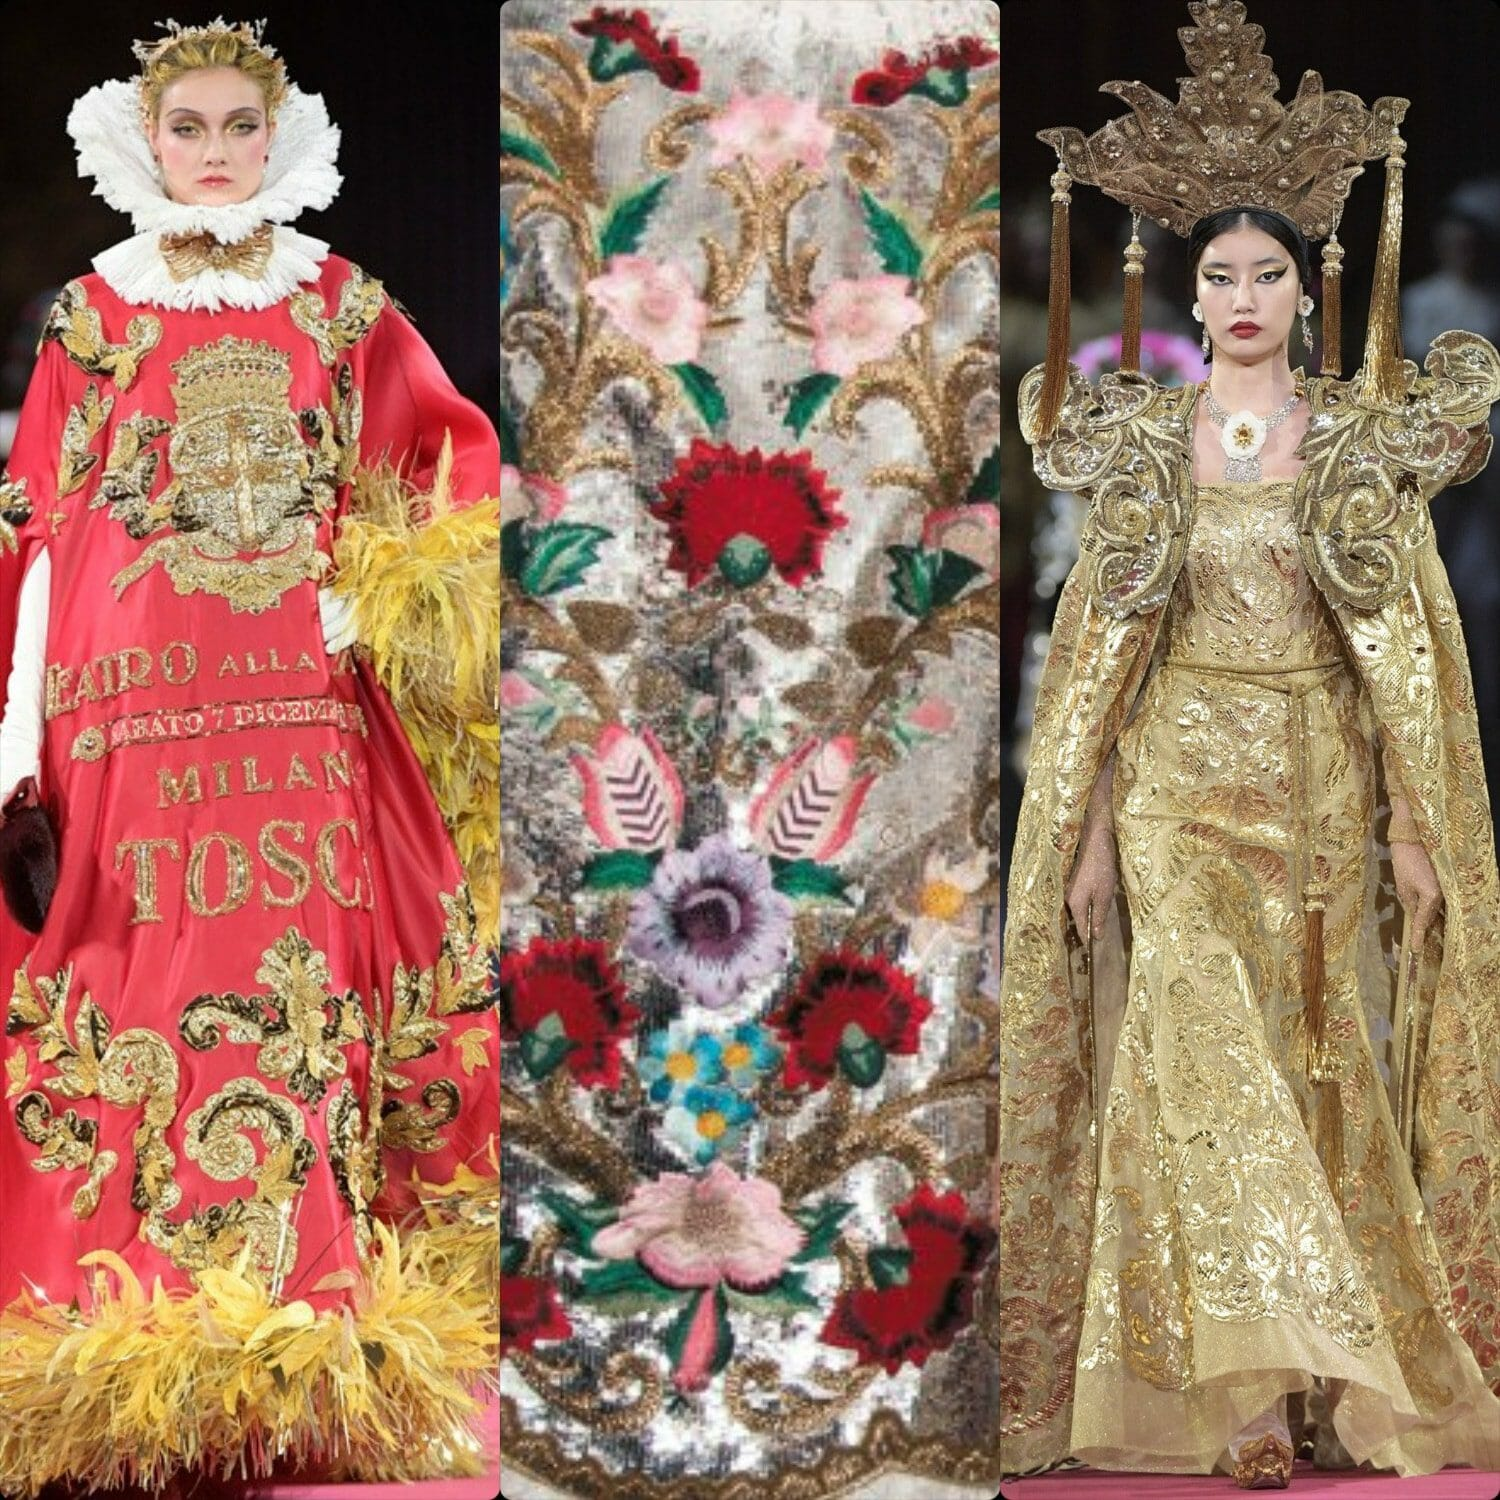 Dolce Gabbana Alta Moda La Scala 2019. RUNWAY MAGAZINE ® Collections. RUNWAY NOW / RUNWAY NEW